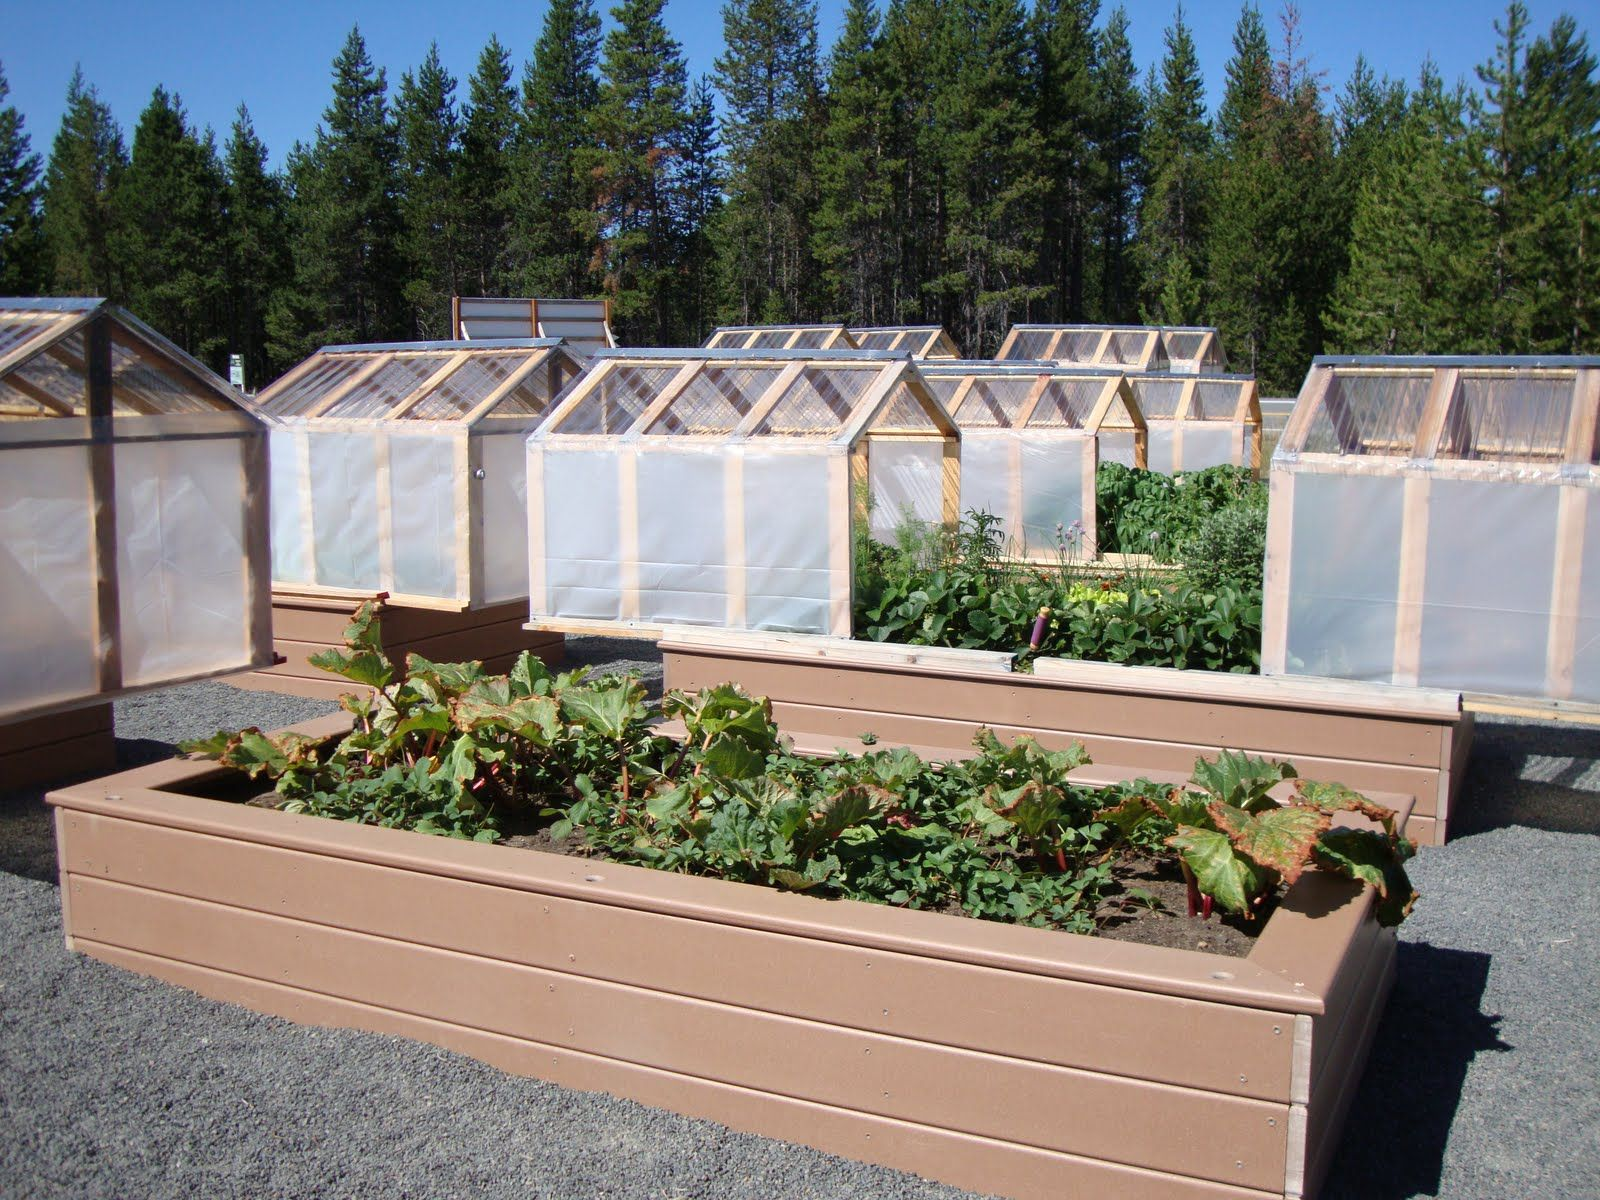 Covered Raised Bed Garden Mini Greenhouses Or Raised